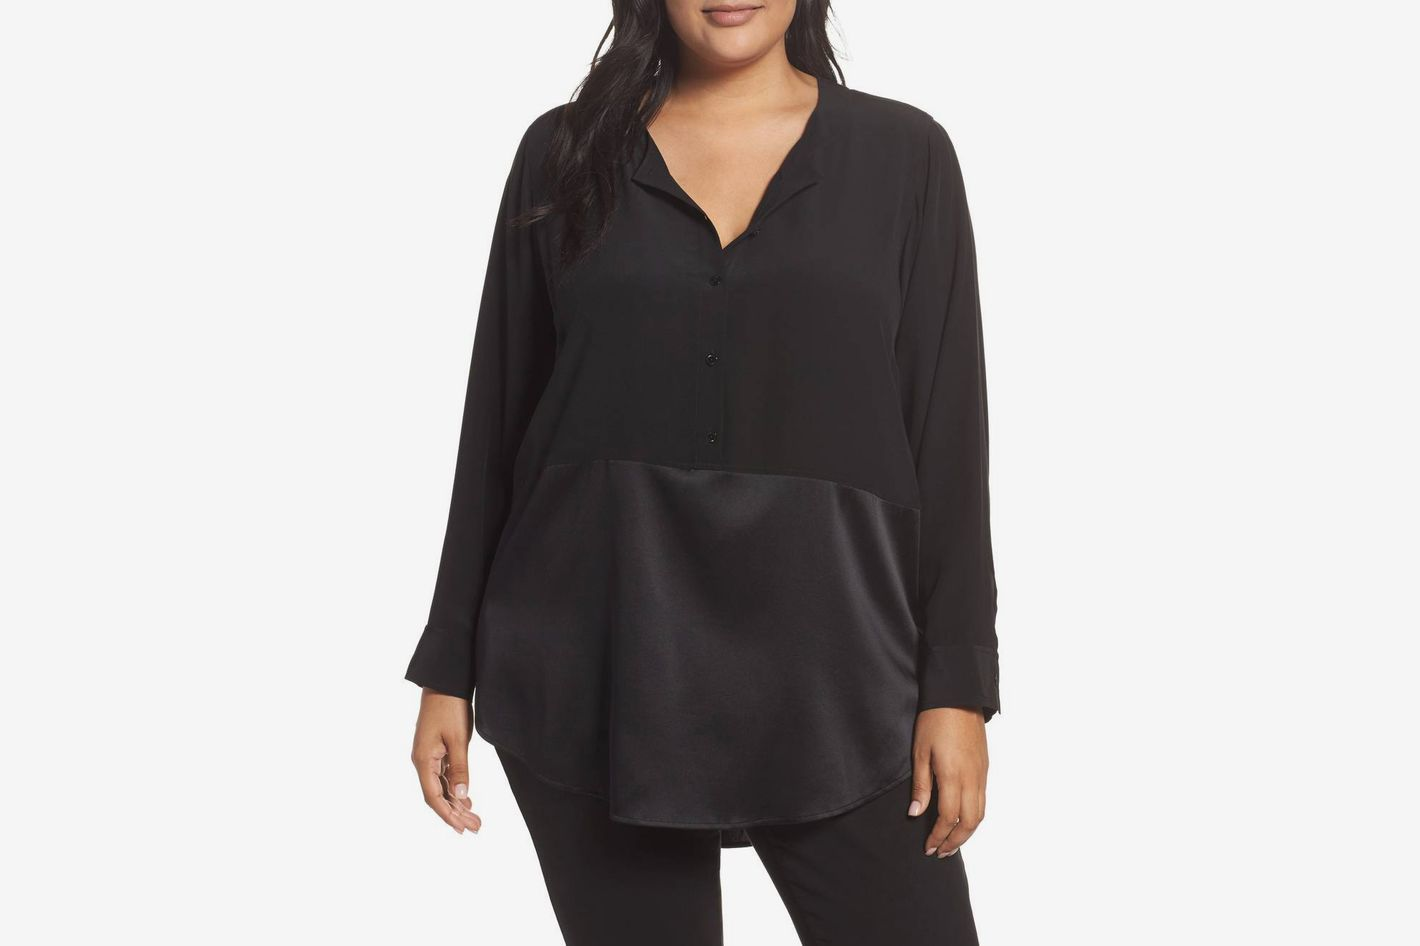 984752a4994 24 Best Plus-Size Professional Clothing for Stylish Women